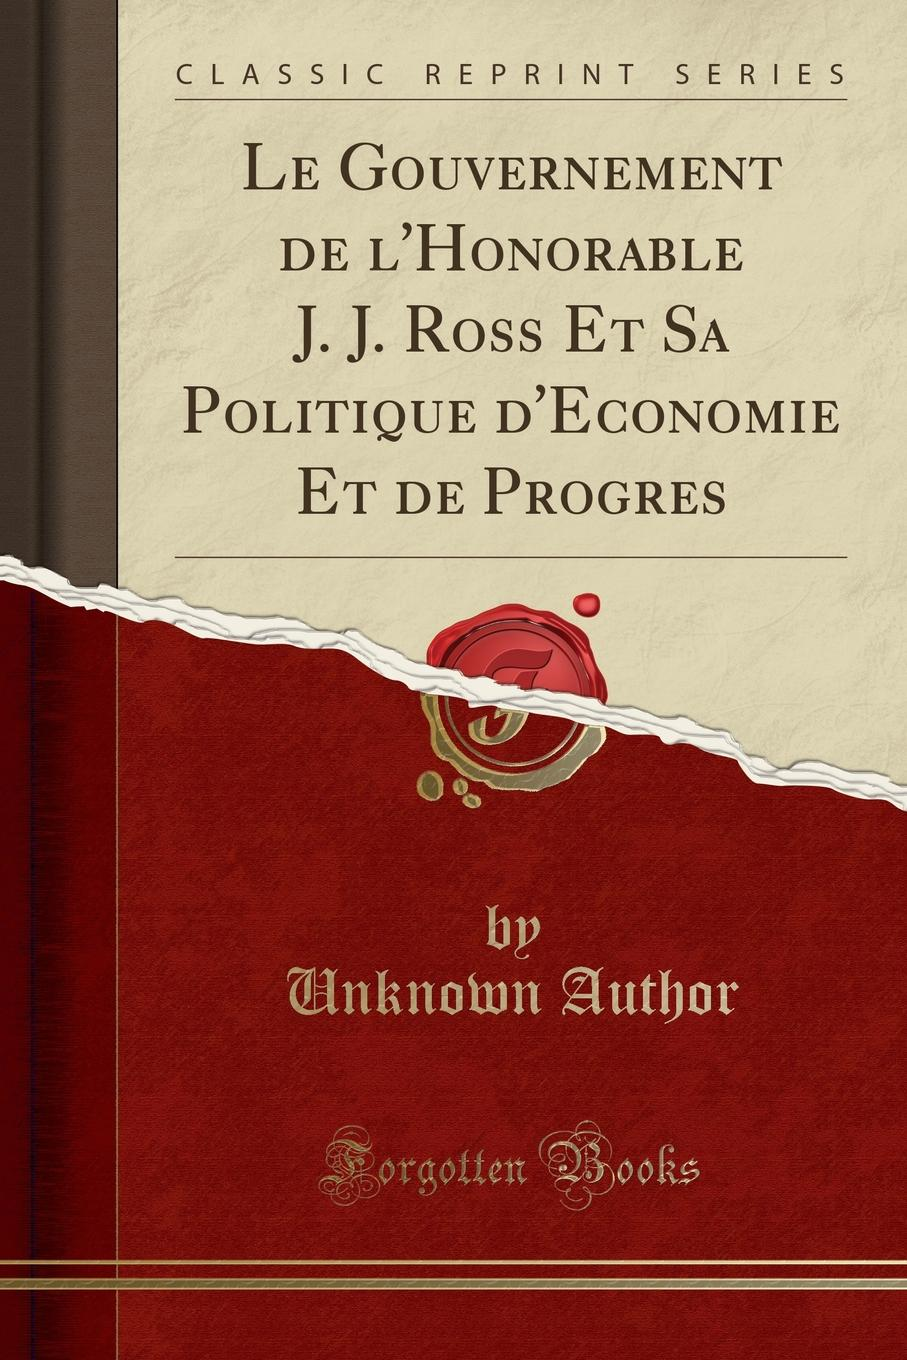 Unknown Author. Le Gouvernement de l.Honorable J. J. Ross Et Sa Politique d.Economie Et de Progres (Classic Reprint)